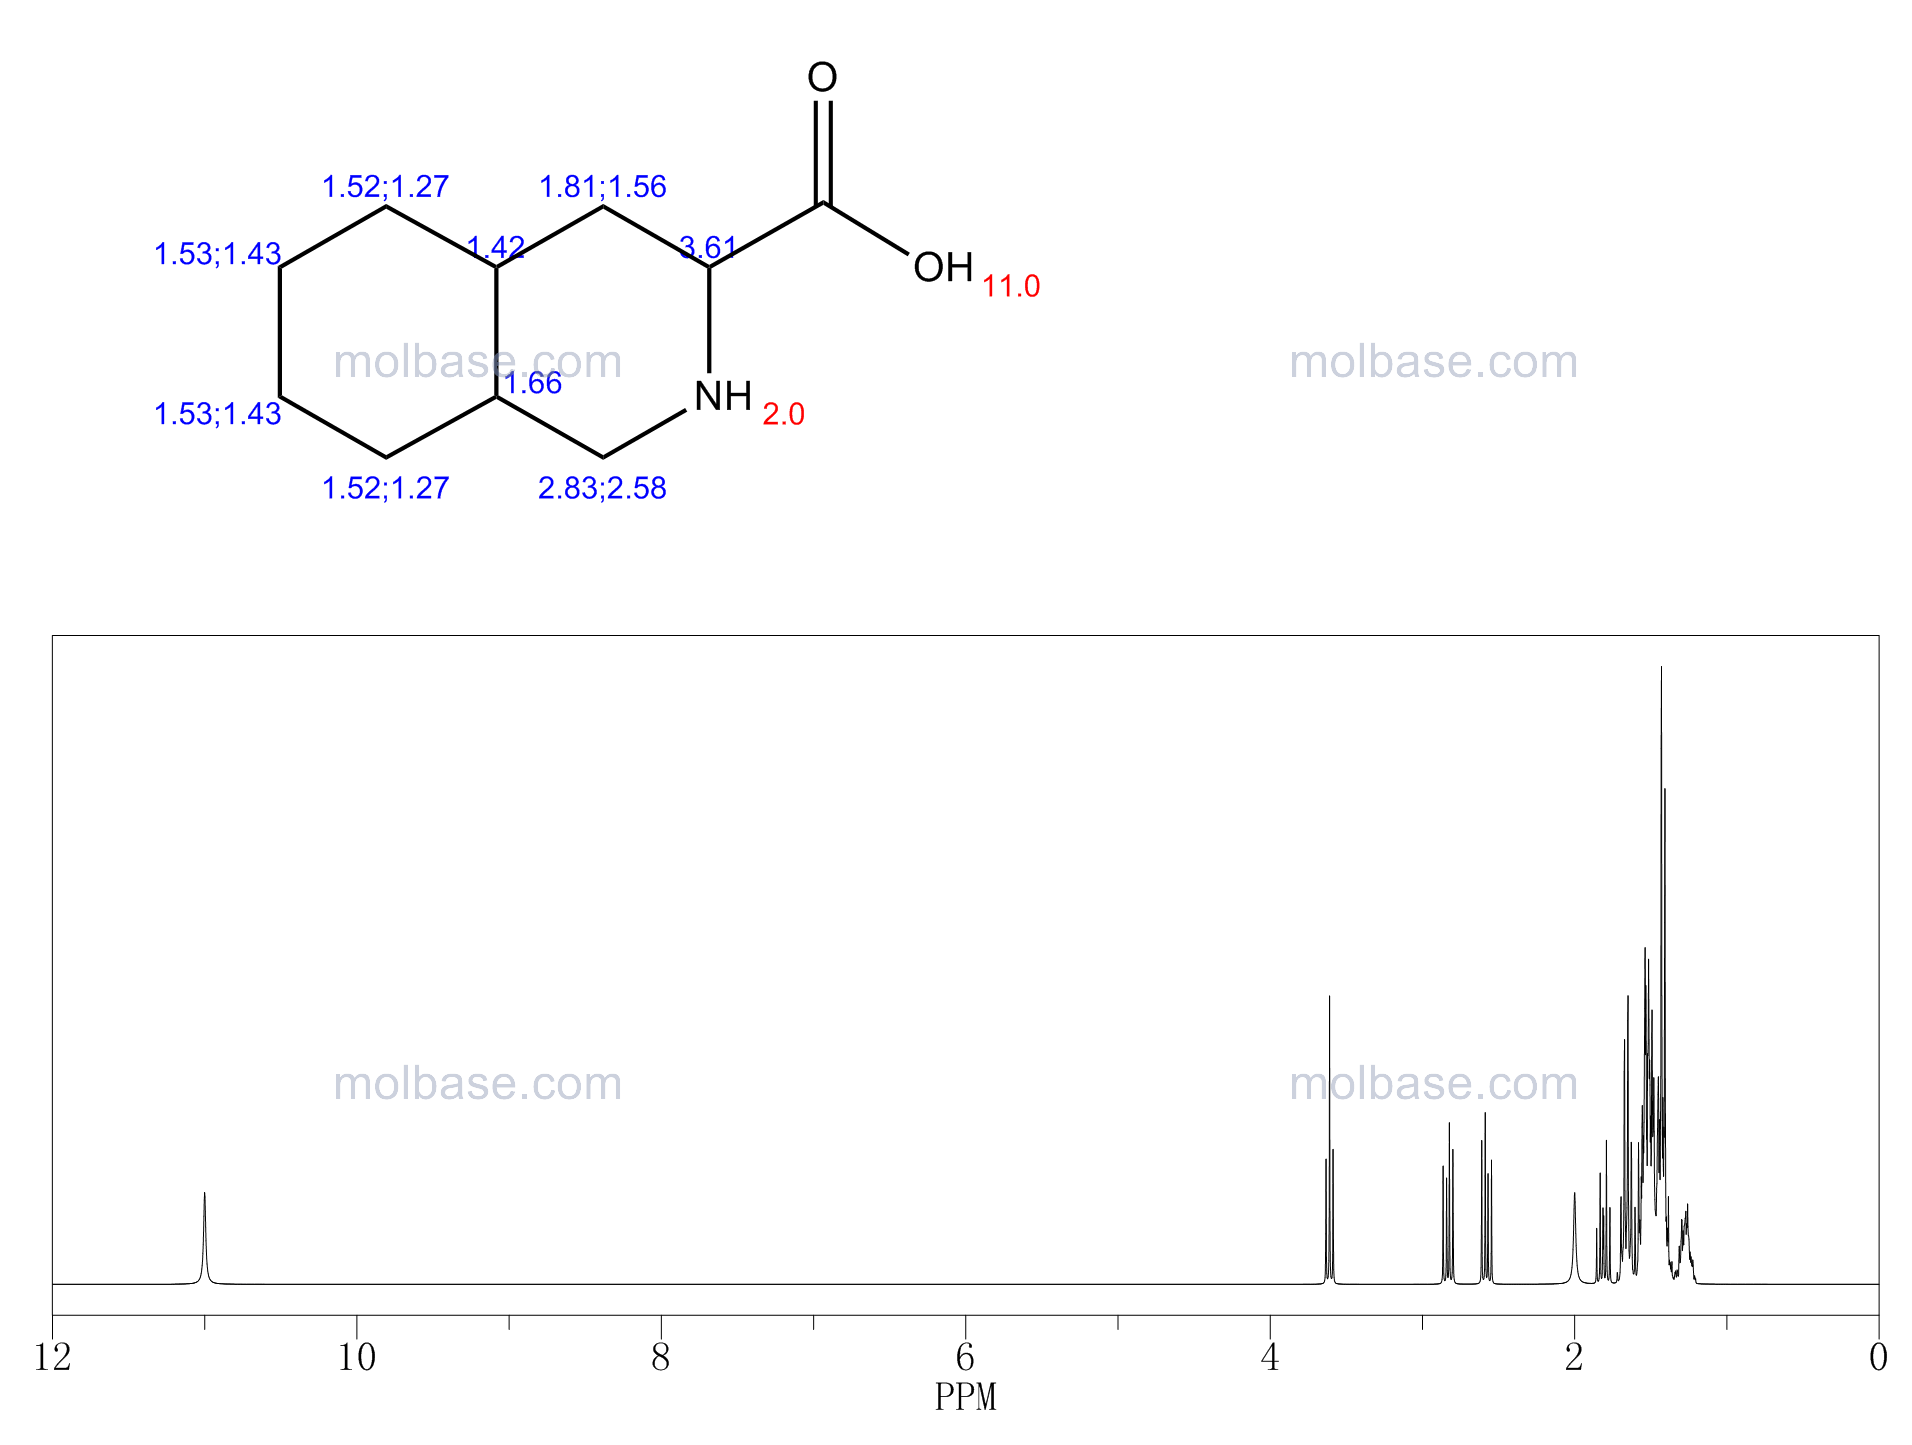 (3S,4aS,8aS)-Decahydroisoquinolinecarboxylic Acid, Hydrochloride Salt NMR spectra analysis, Chemical CAS NO. 115238-58-9 NMR spectral analysis, (3S,4aS,8aS)-Decahydroisoquinolinecarboxylic Acid, Hydrochloride Salt C-NMR spectrum